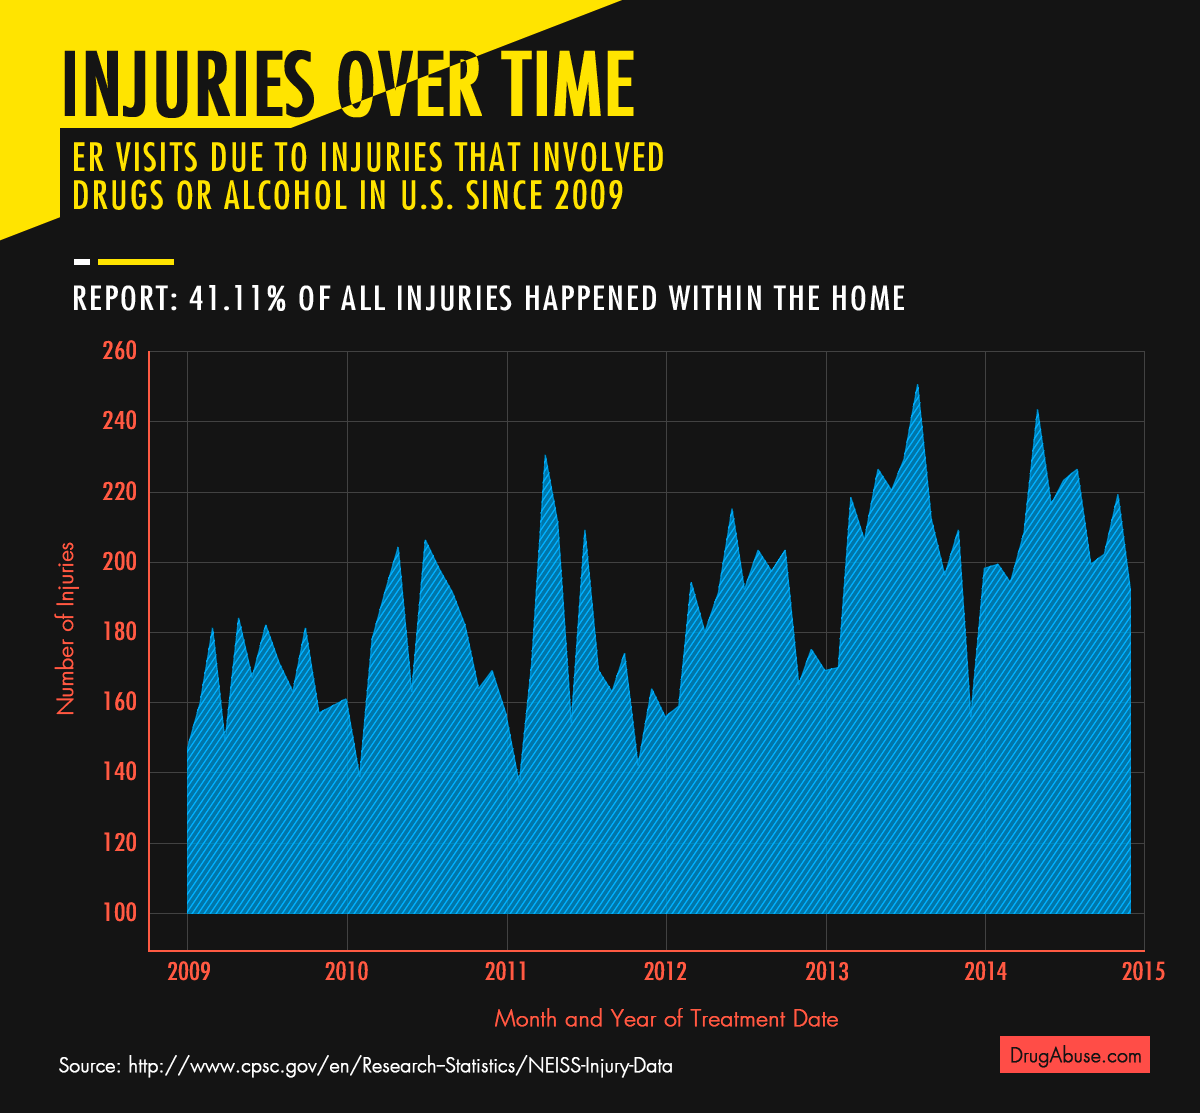 injuries-over-time